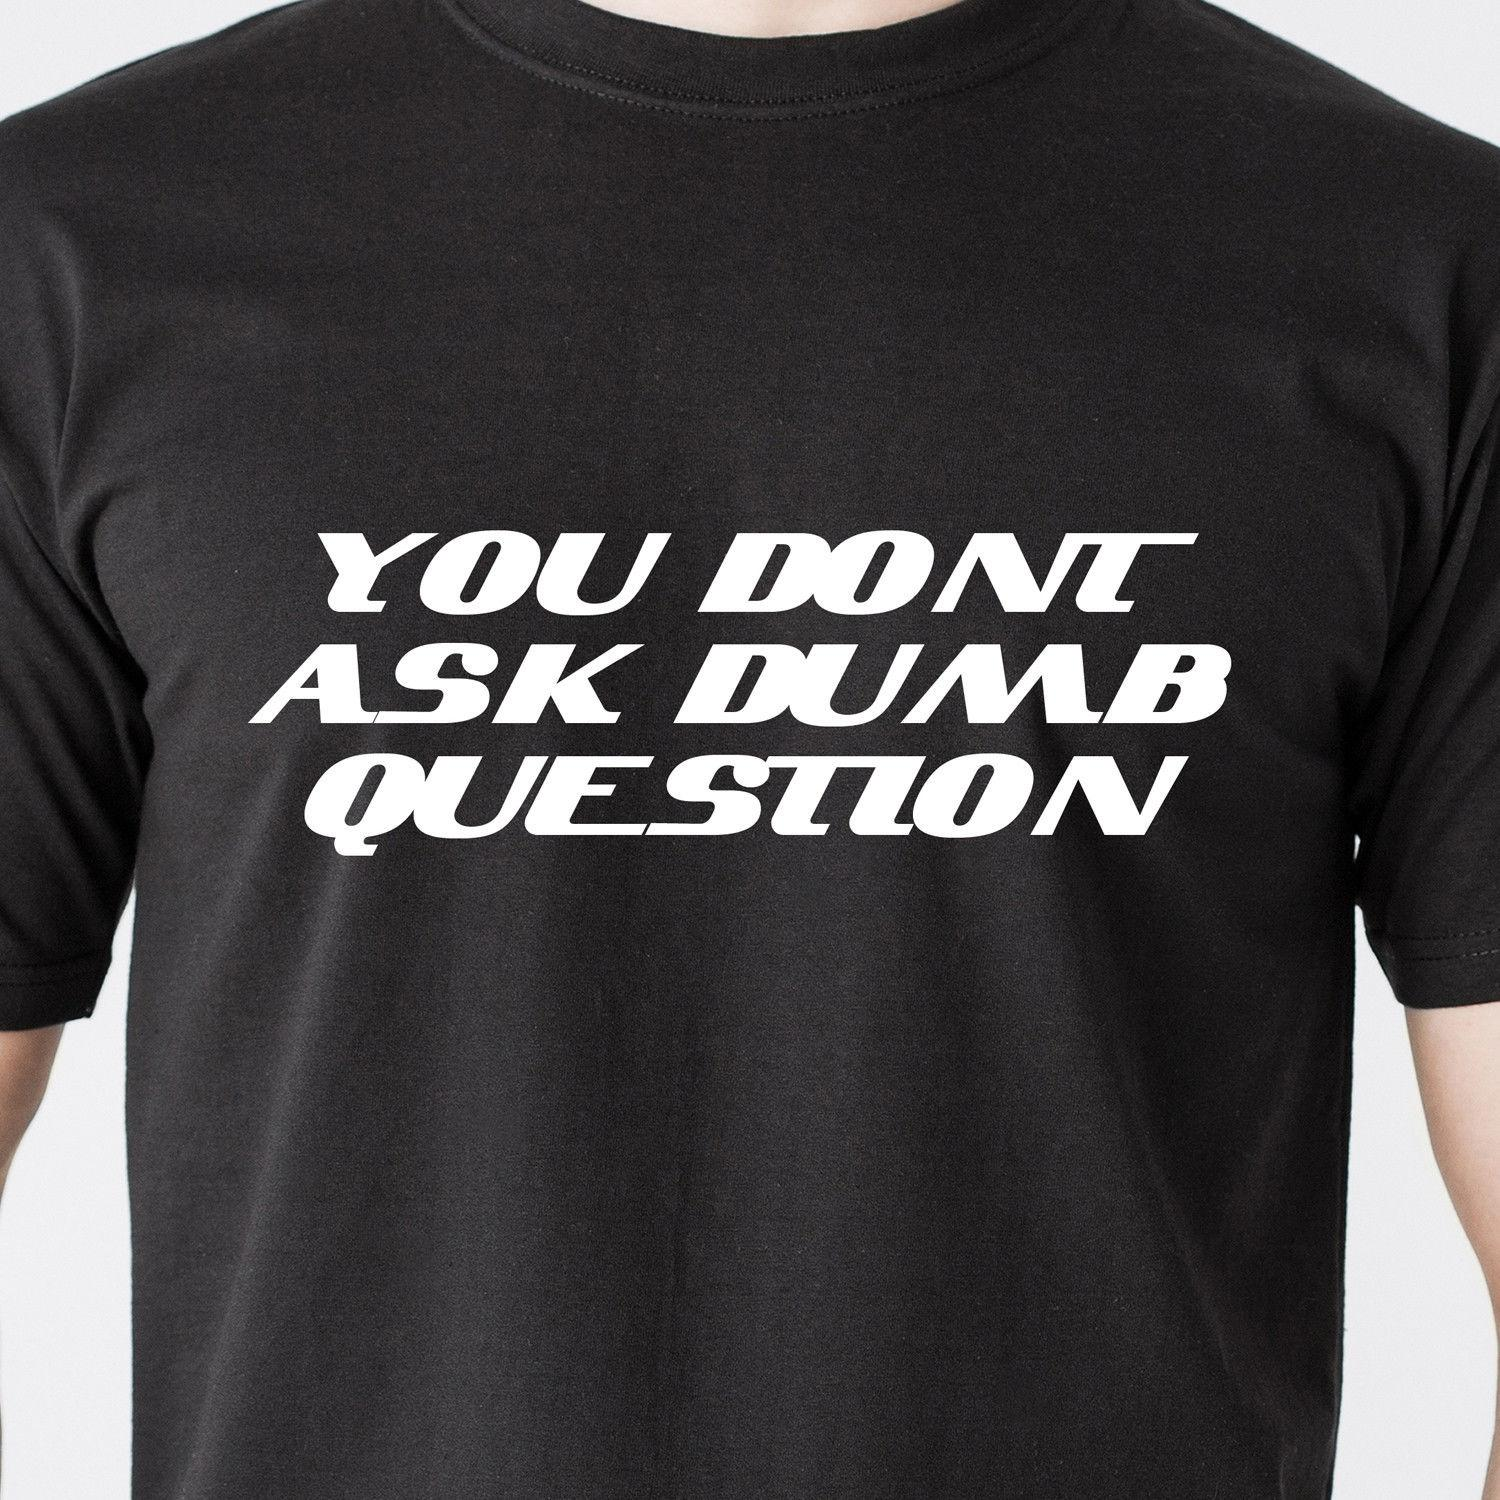 023ec51c0 You Dont Ask Dumb Question Gas Immigrant Humor MN Radio Show Retro Funny T  ShirtFunny Unisex Casual Tshirt Top Ot Shirts Best Designer T Shirts From  ...